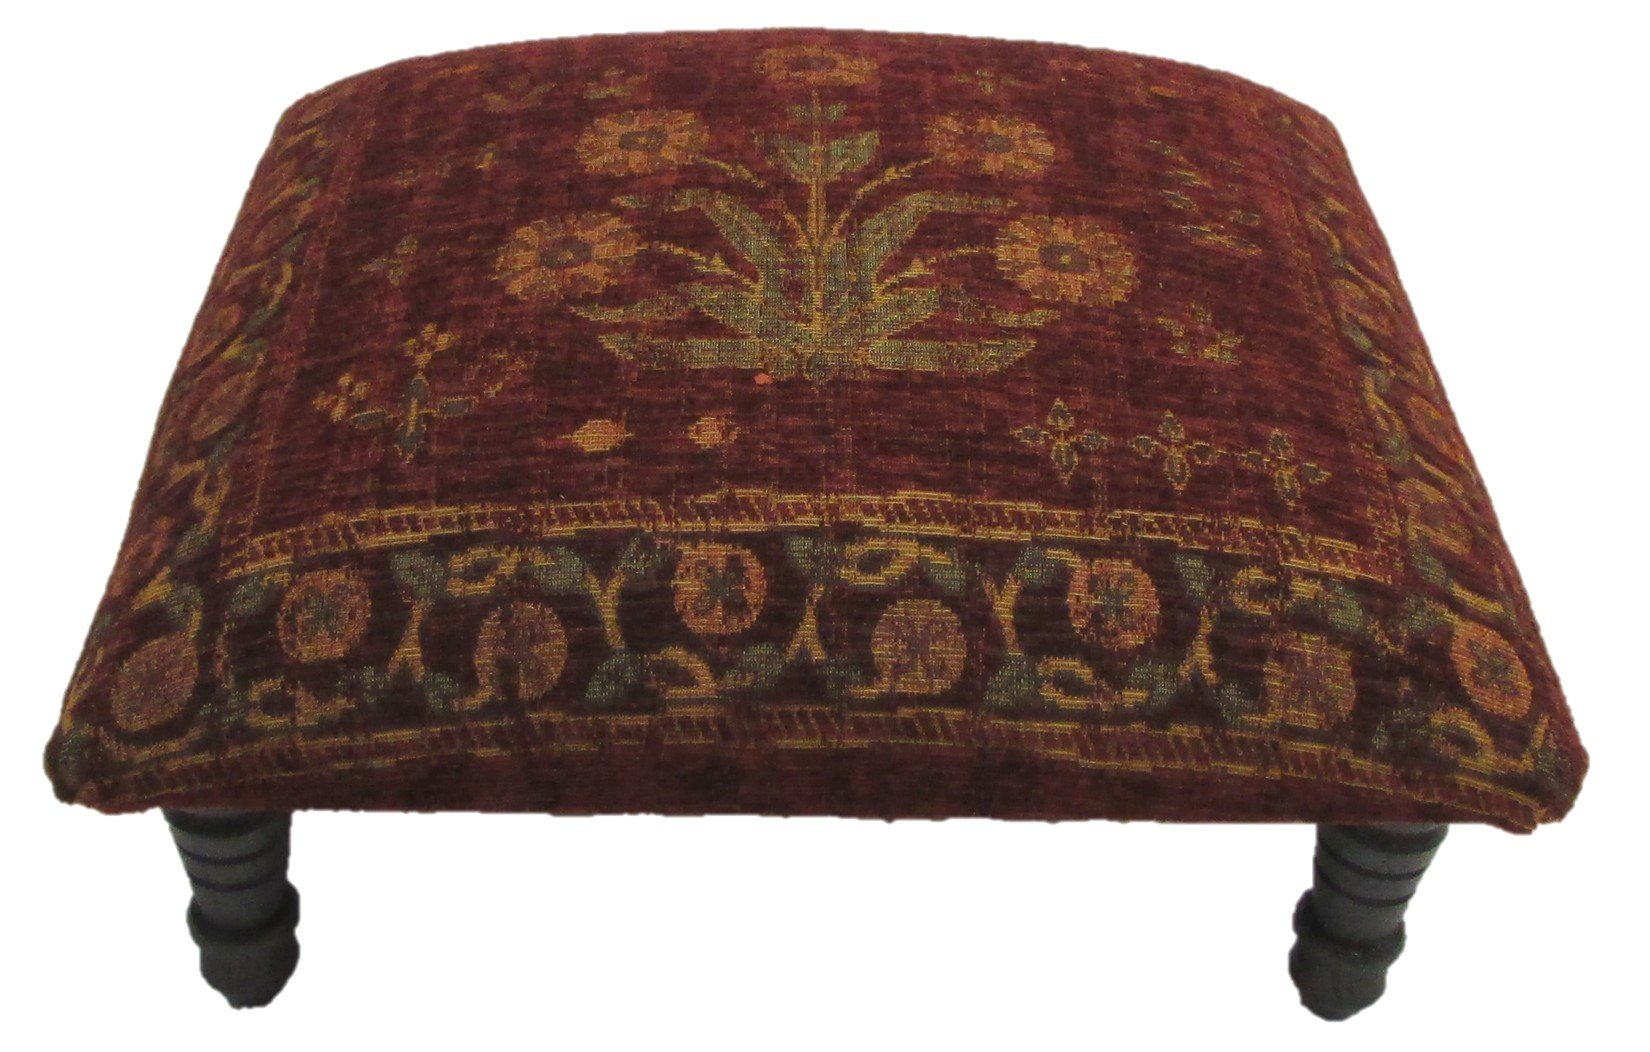 Corona Decor Hand-Woven Tones Footstool, Floral Design, Red